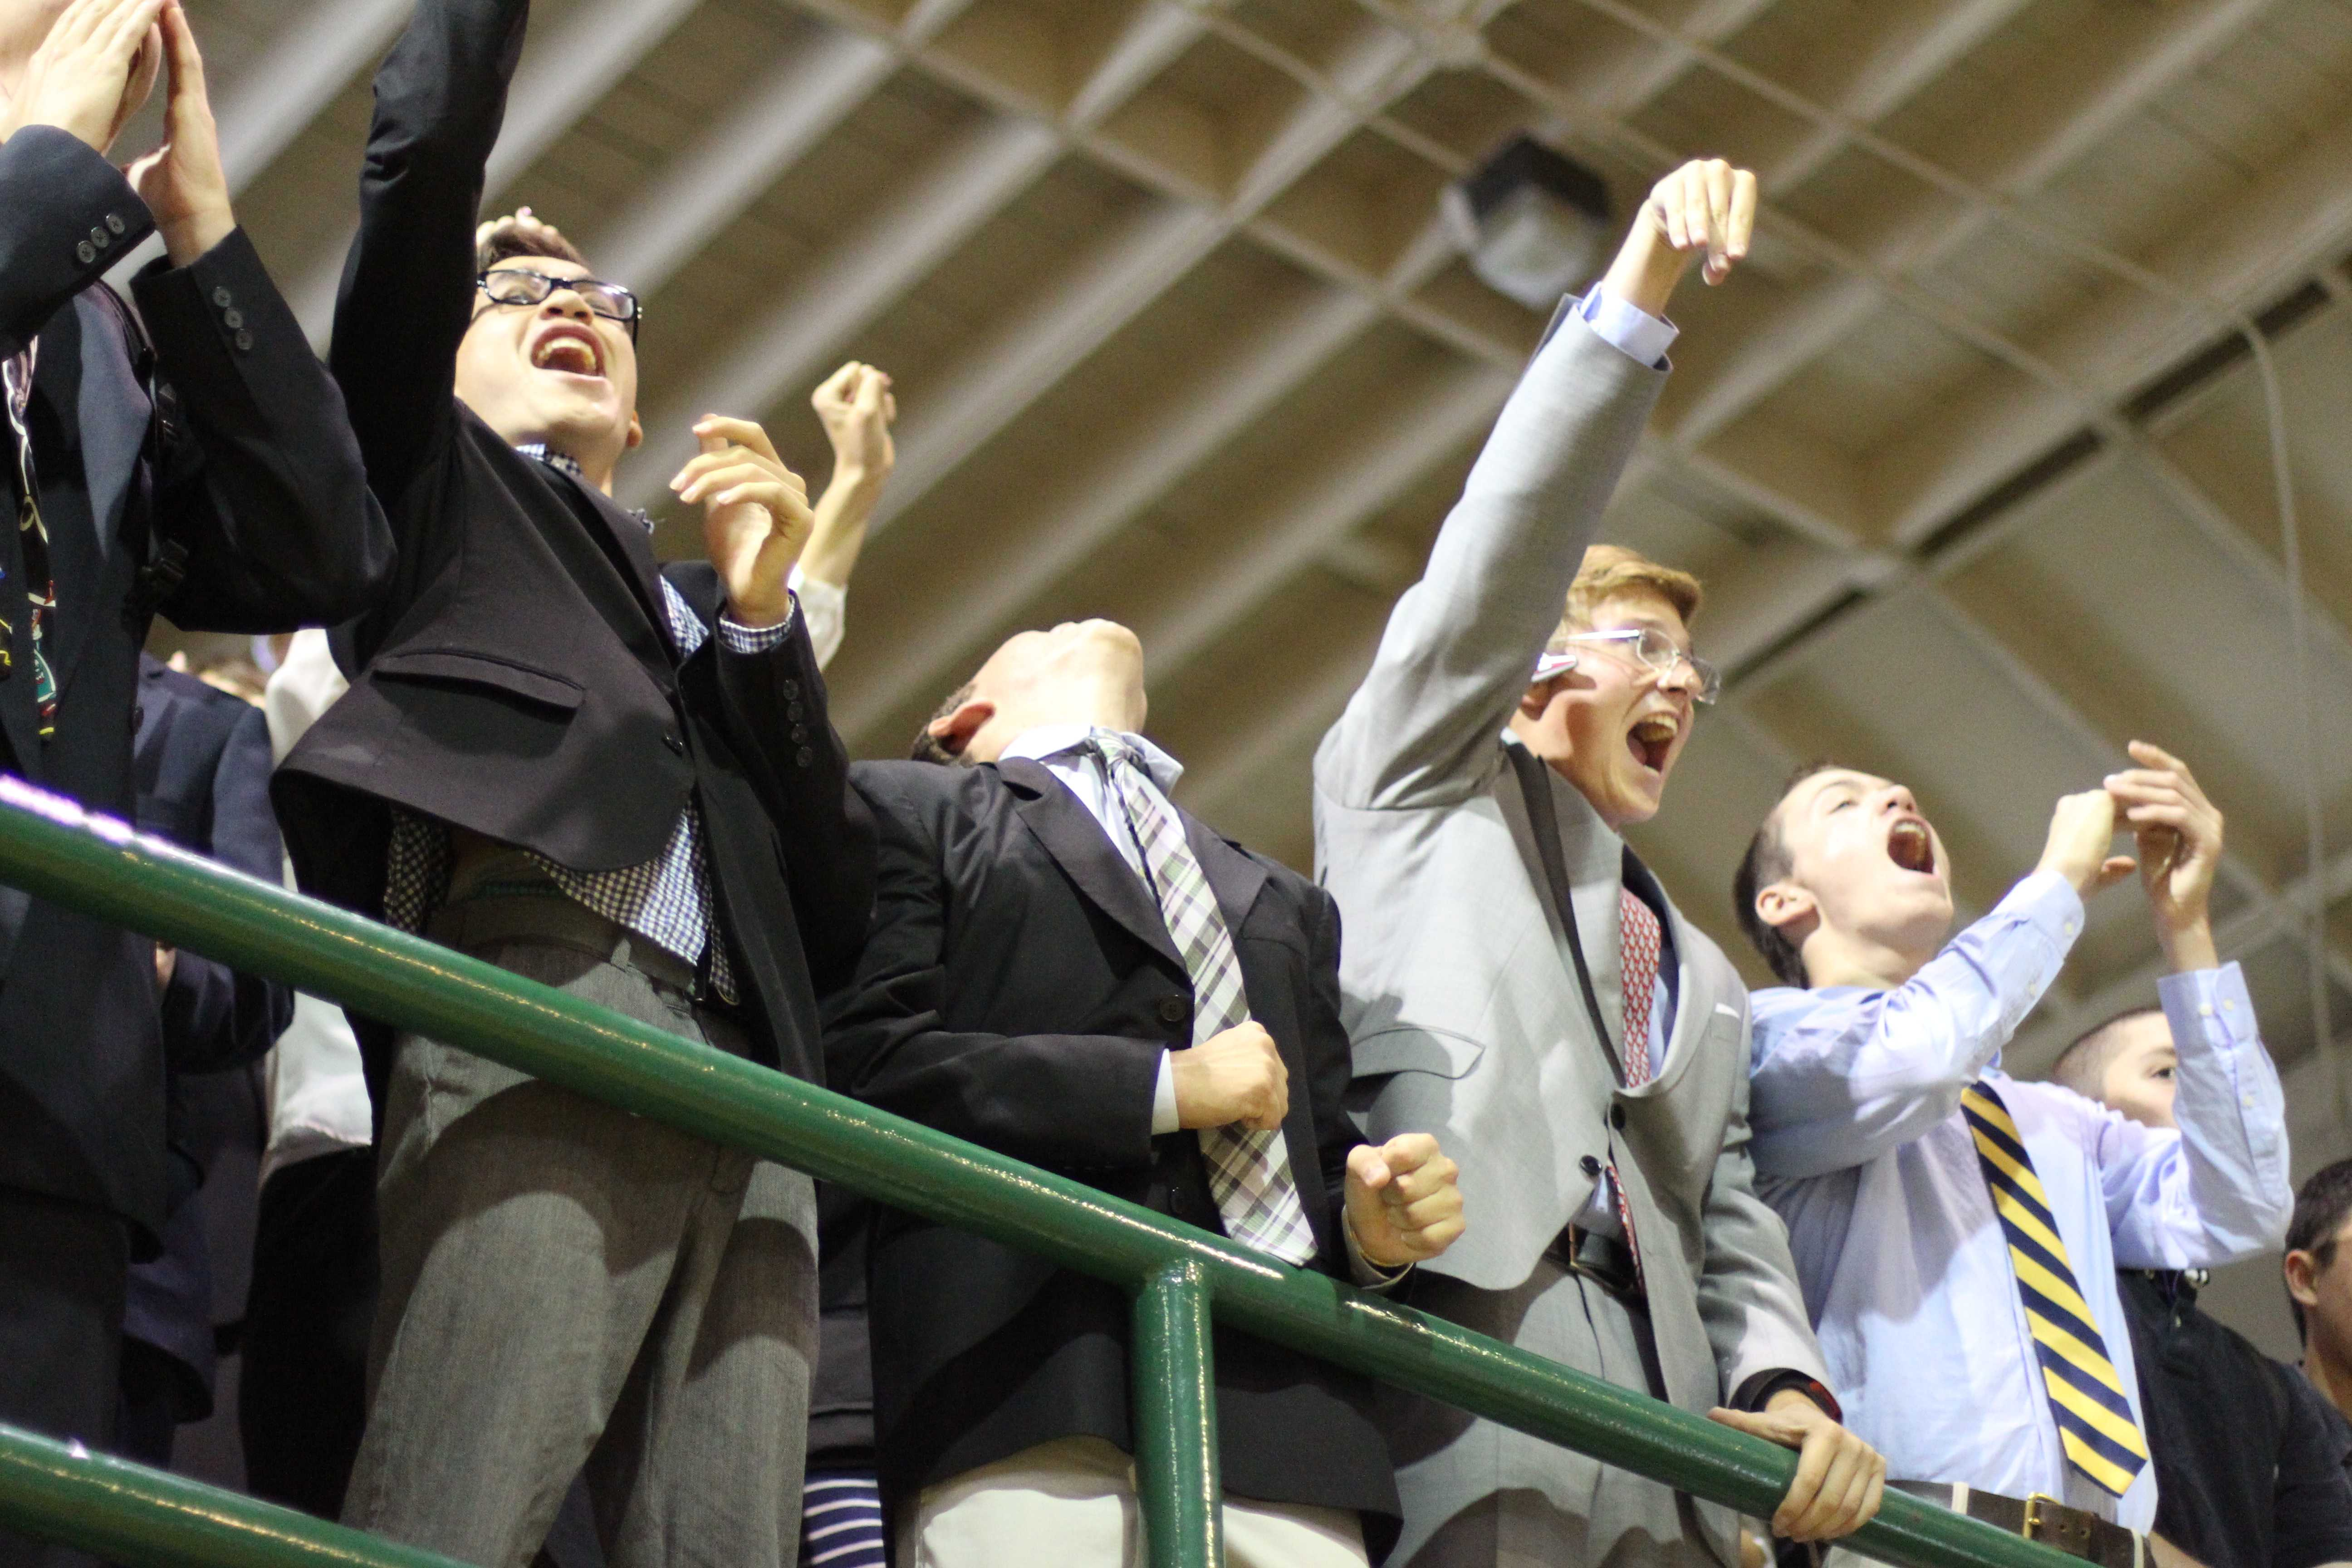 Juniors cheer from the bleachers during the Spirit Rally after school. [Photo: Cathy Rong]